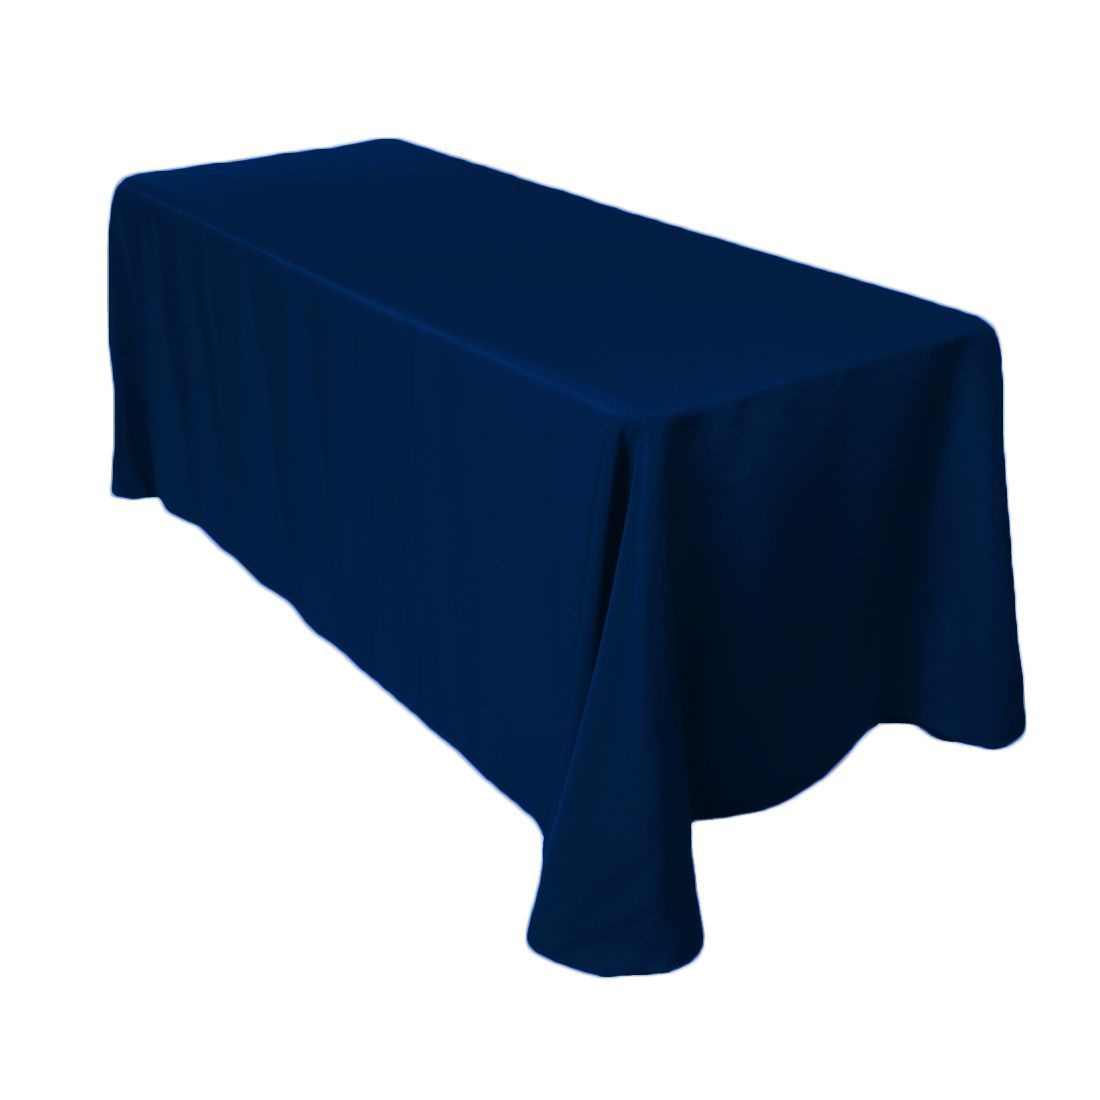 90 X 132 In Rectangular Polyester Tablecloth Navy Blue Navy